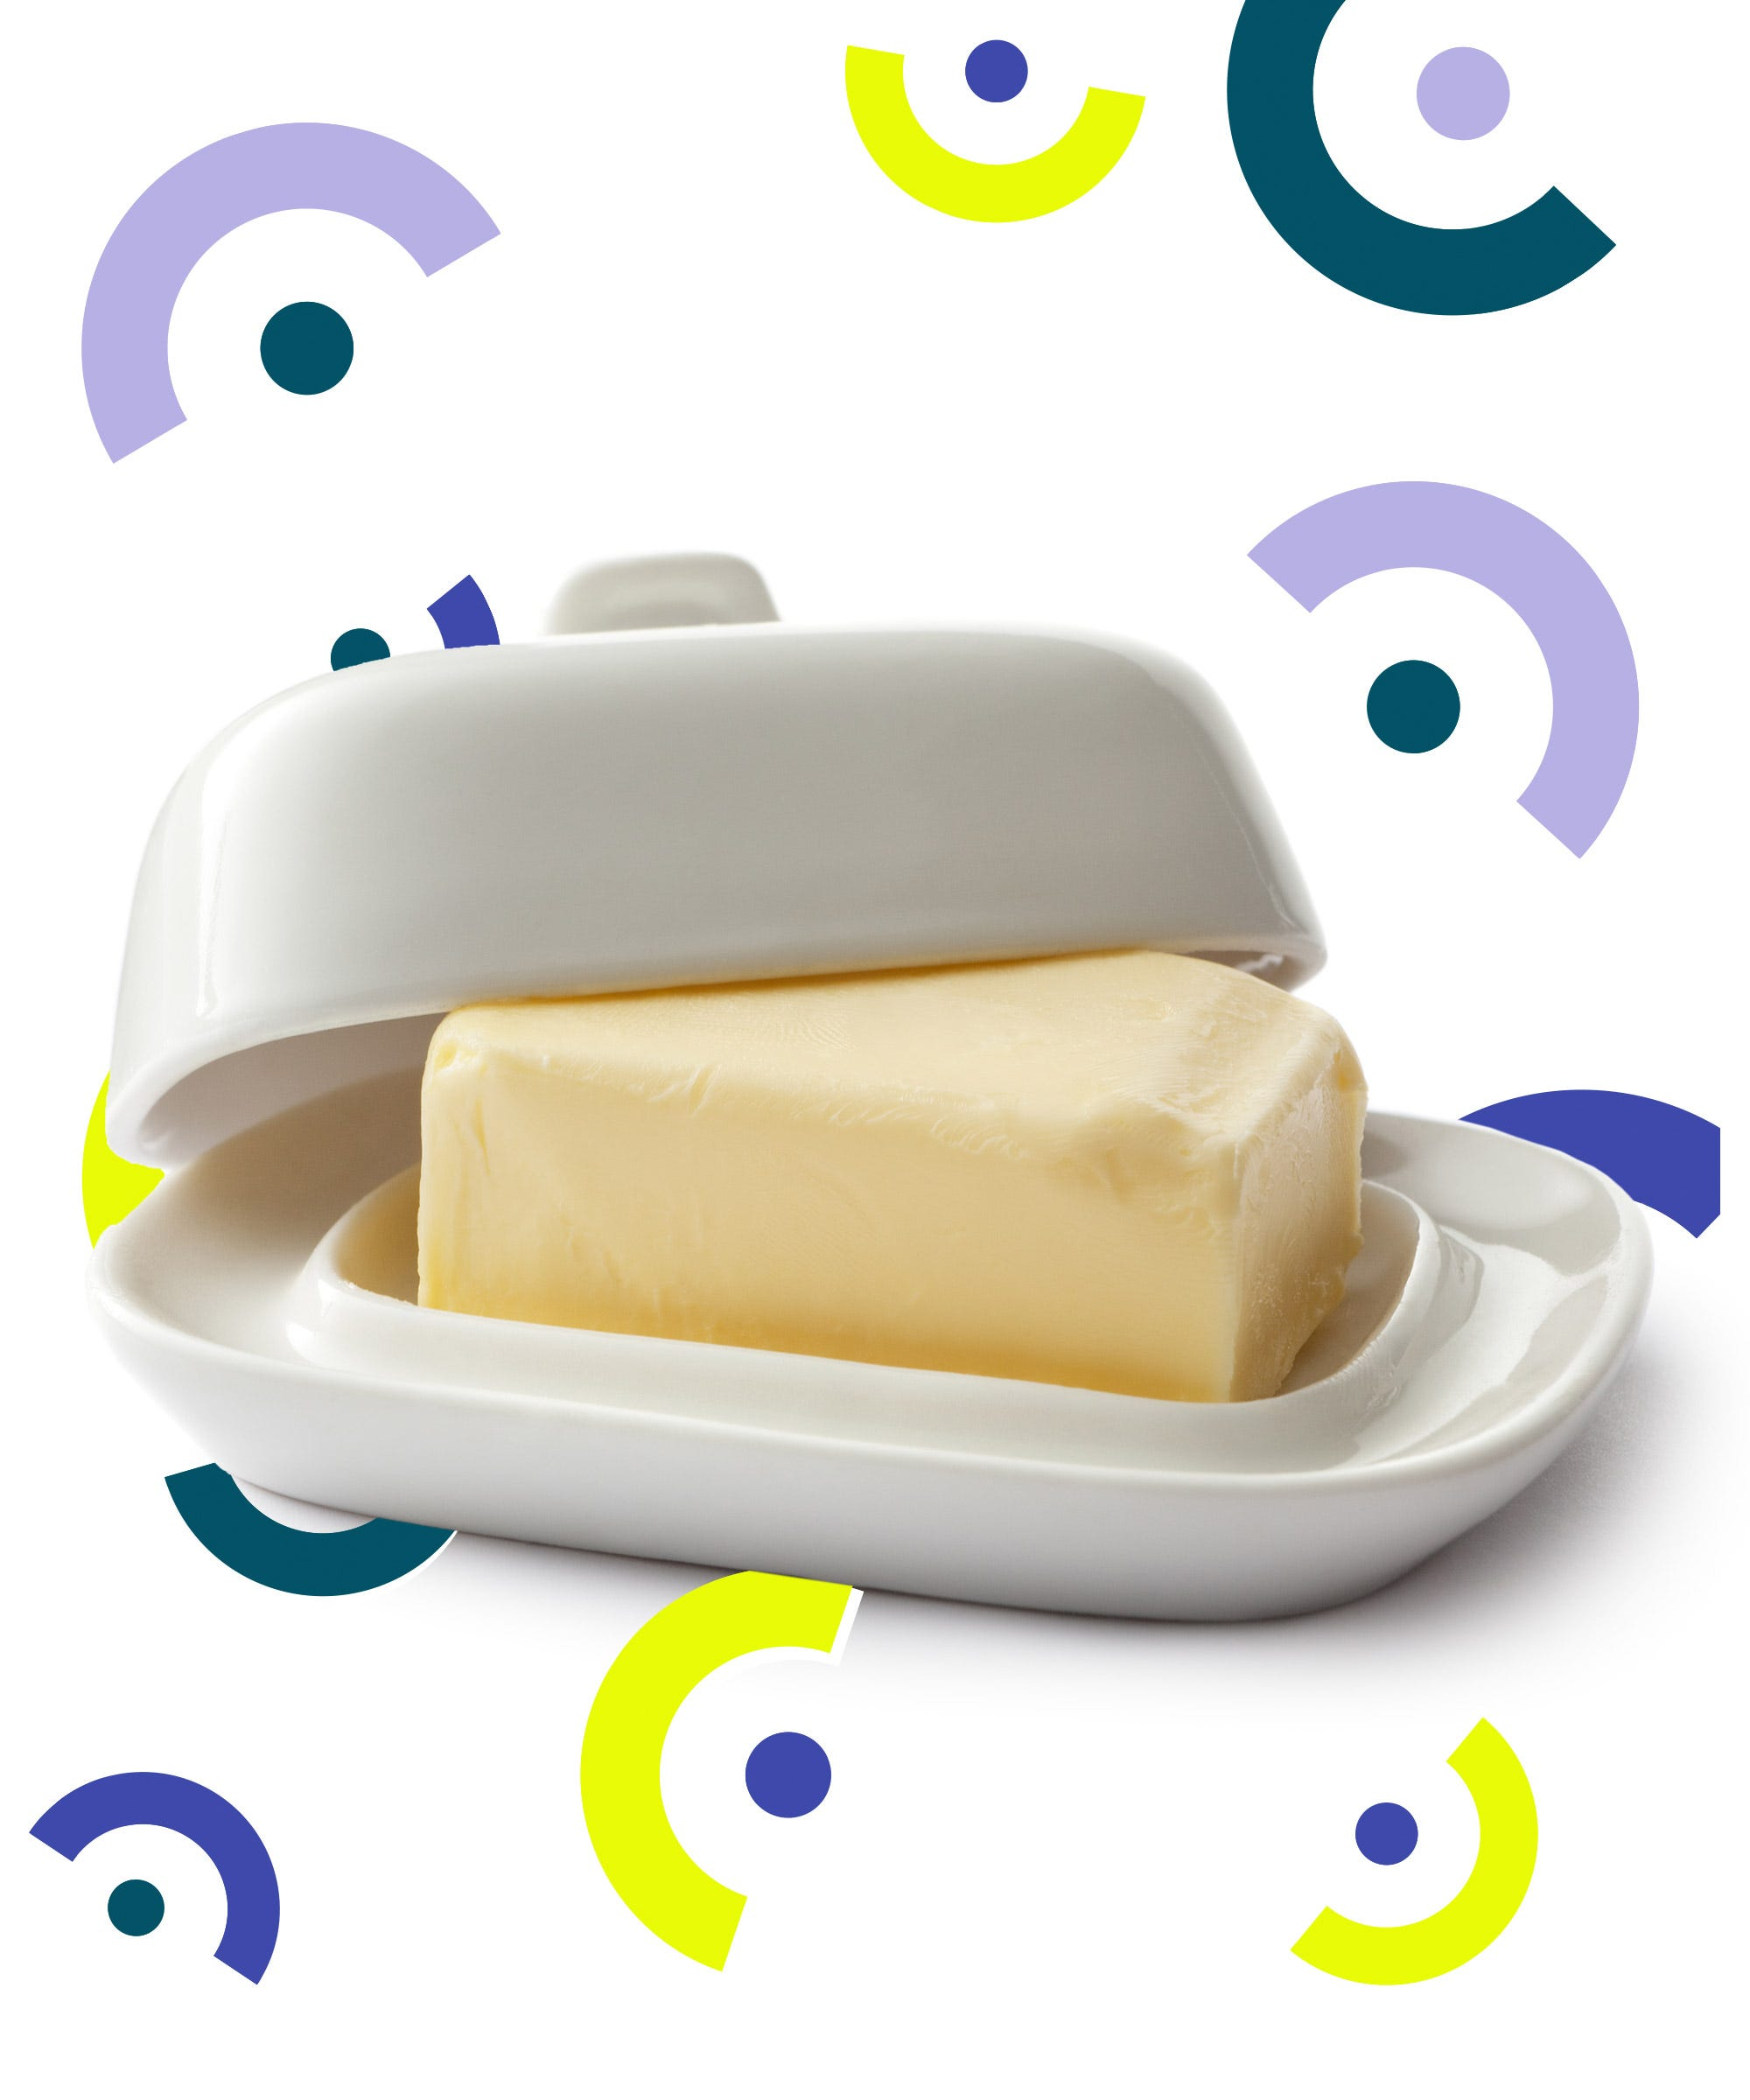 Do You Really Need To Keep Butter In The Fridge?